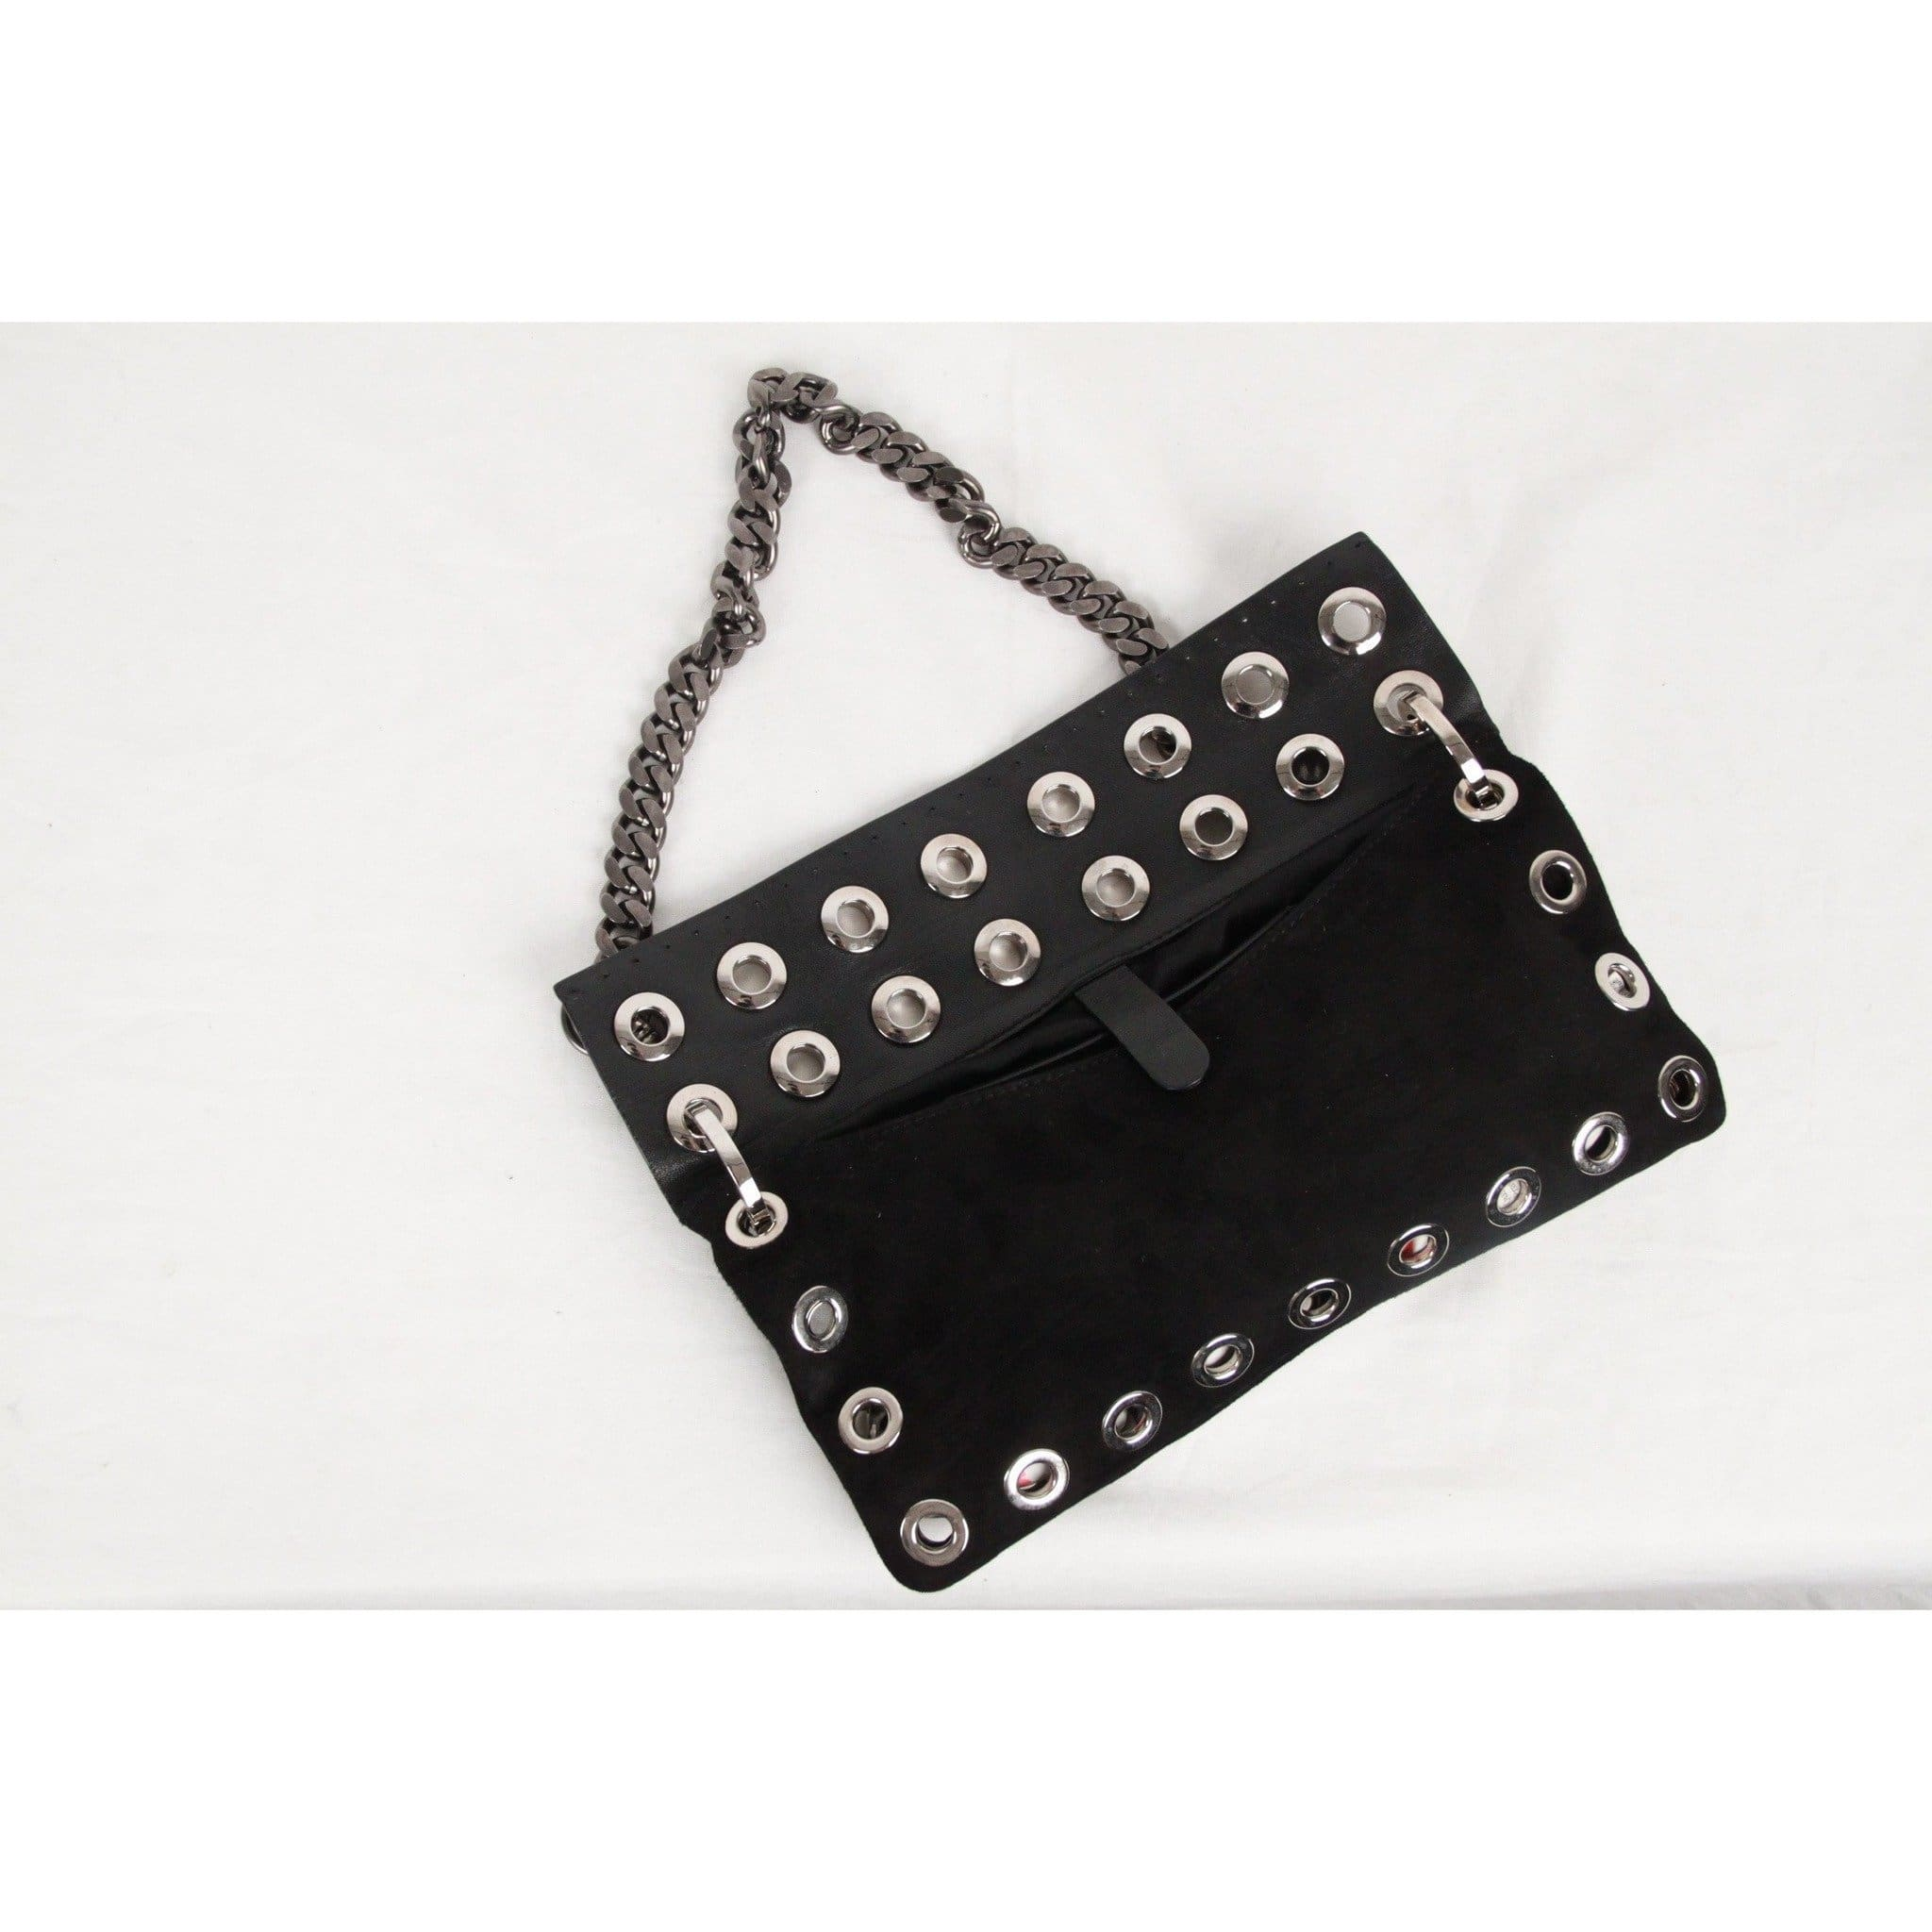 203e37a9d3 Versus Versace Vintage Black Suede   Leather Rivet Shoulder Bag Opherty    Ciocci